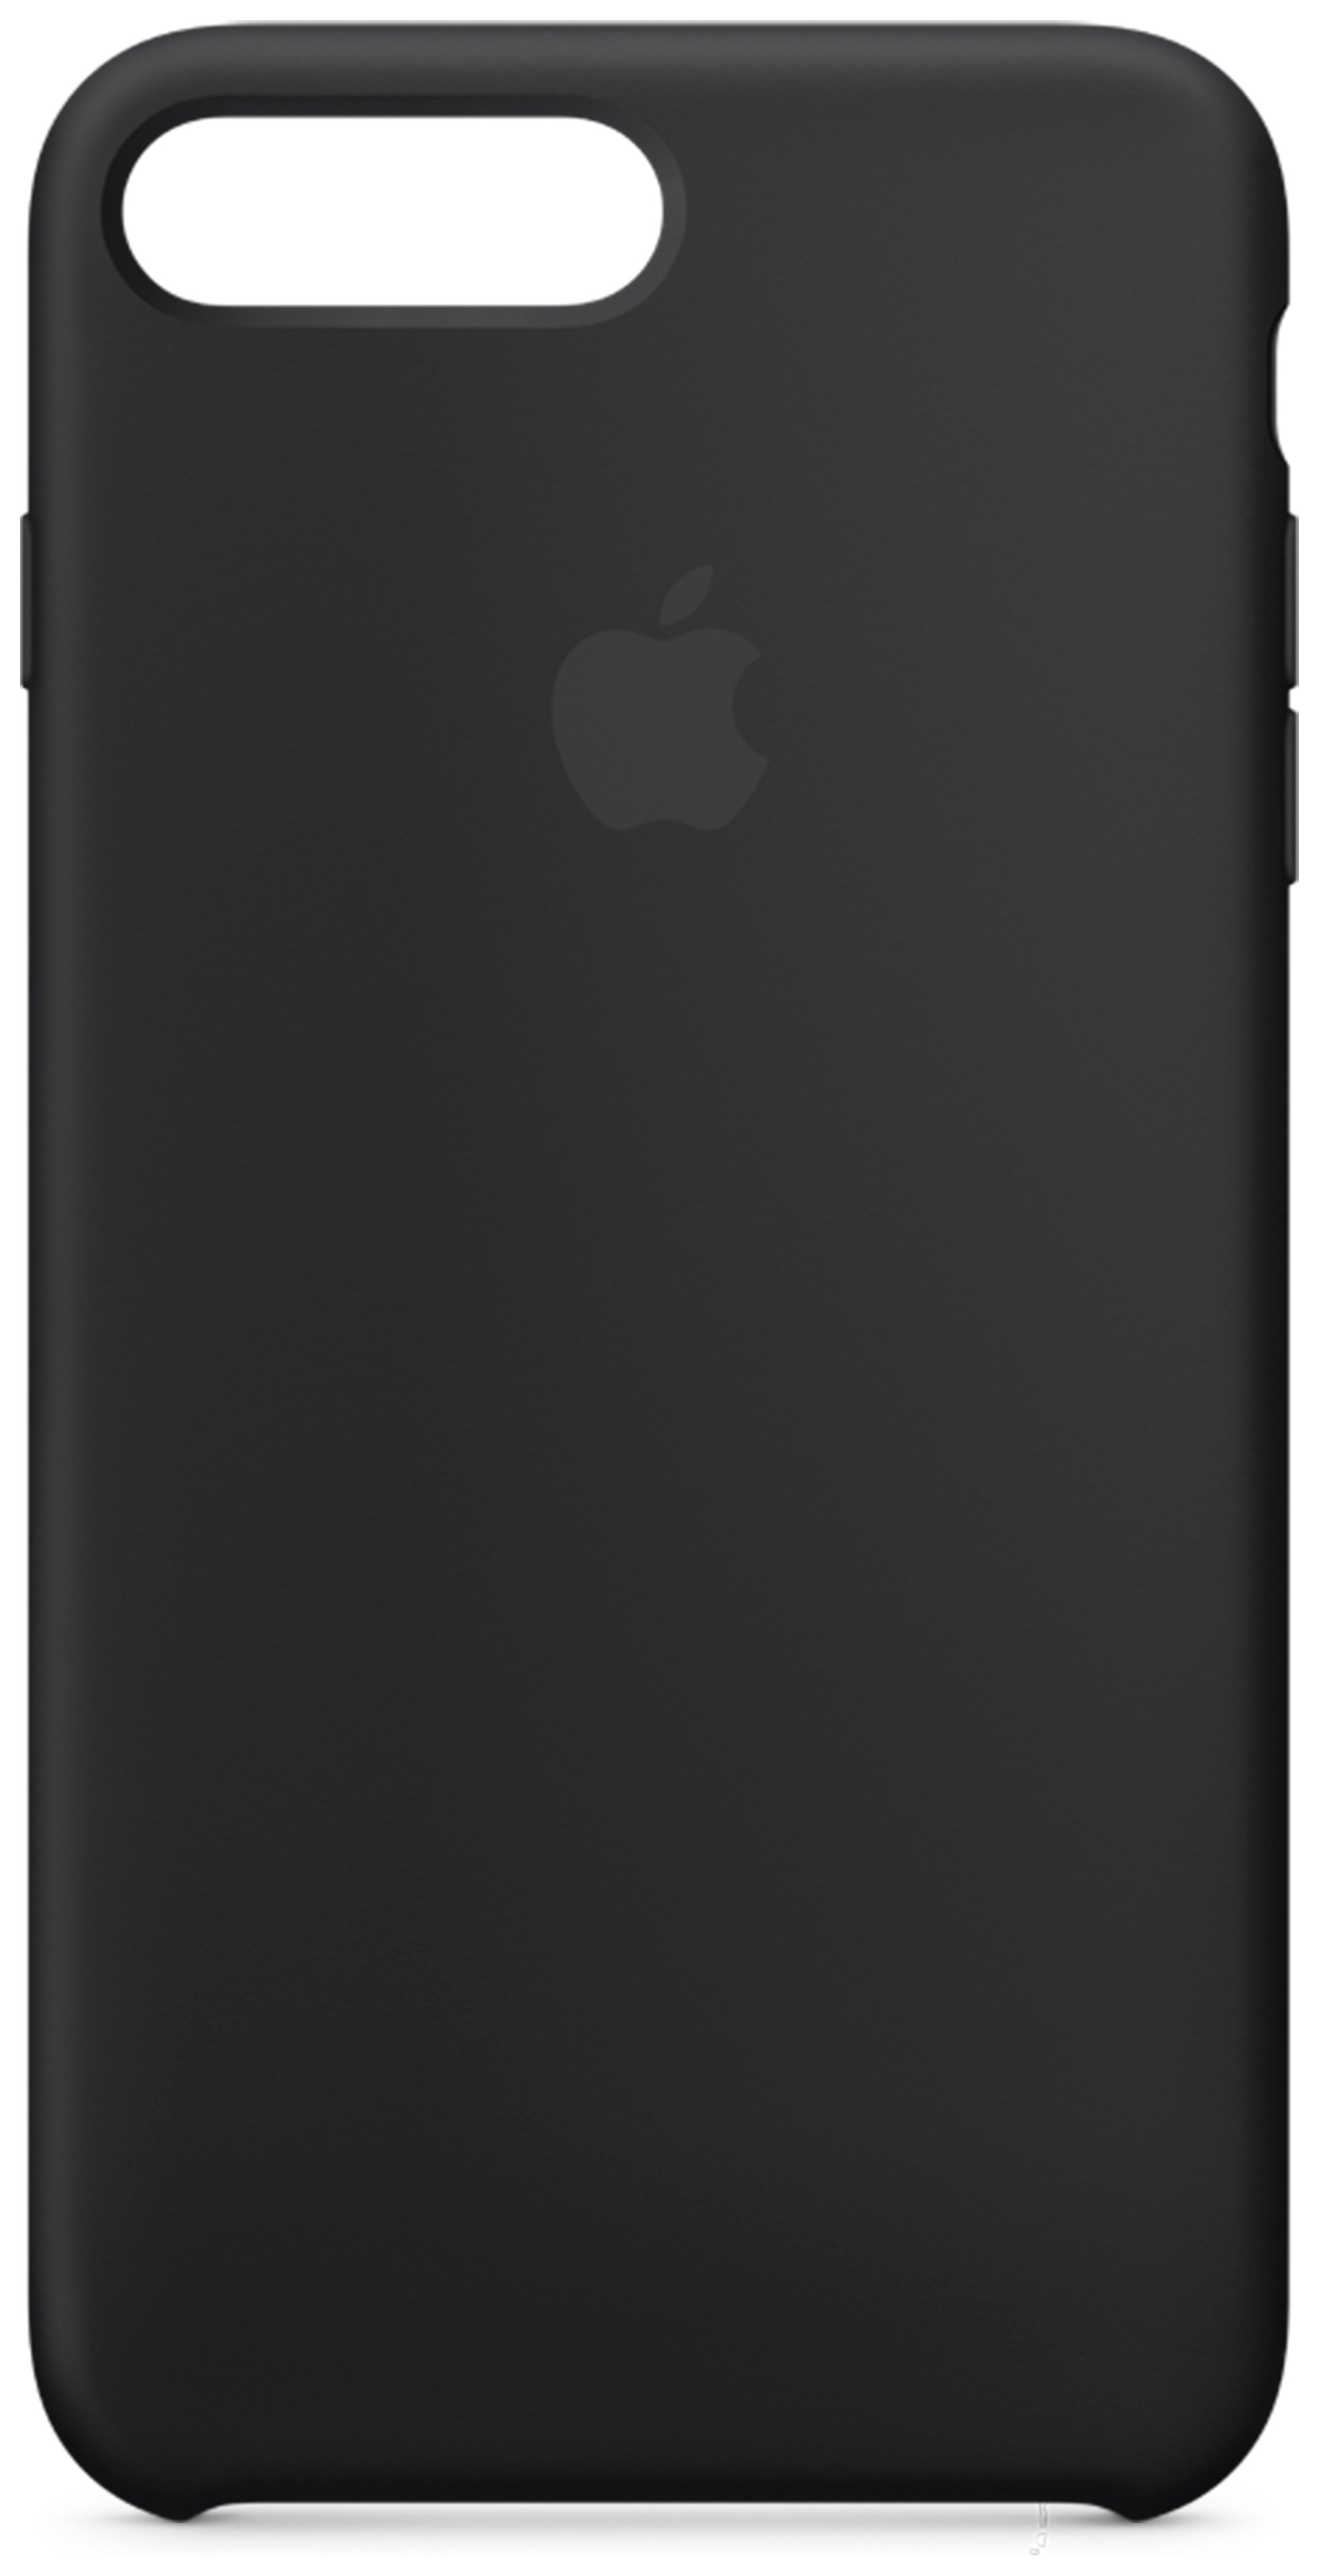 Apple iPhone 7 Plus Silicone Case - Black cheapest retail price